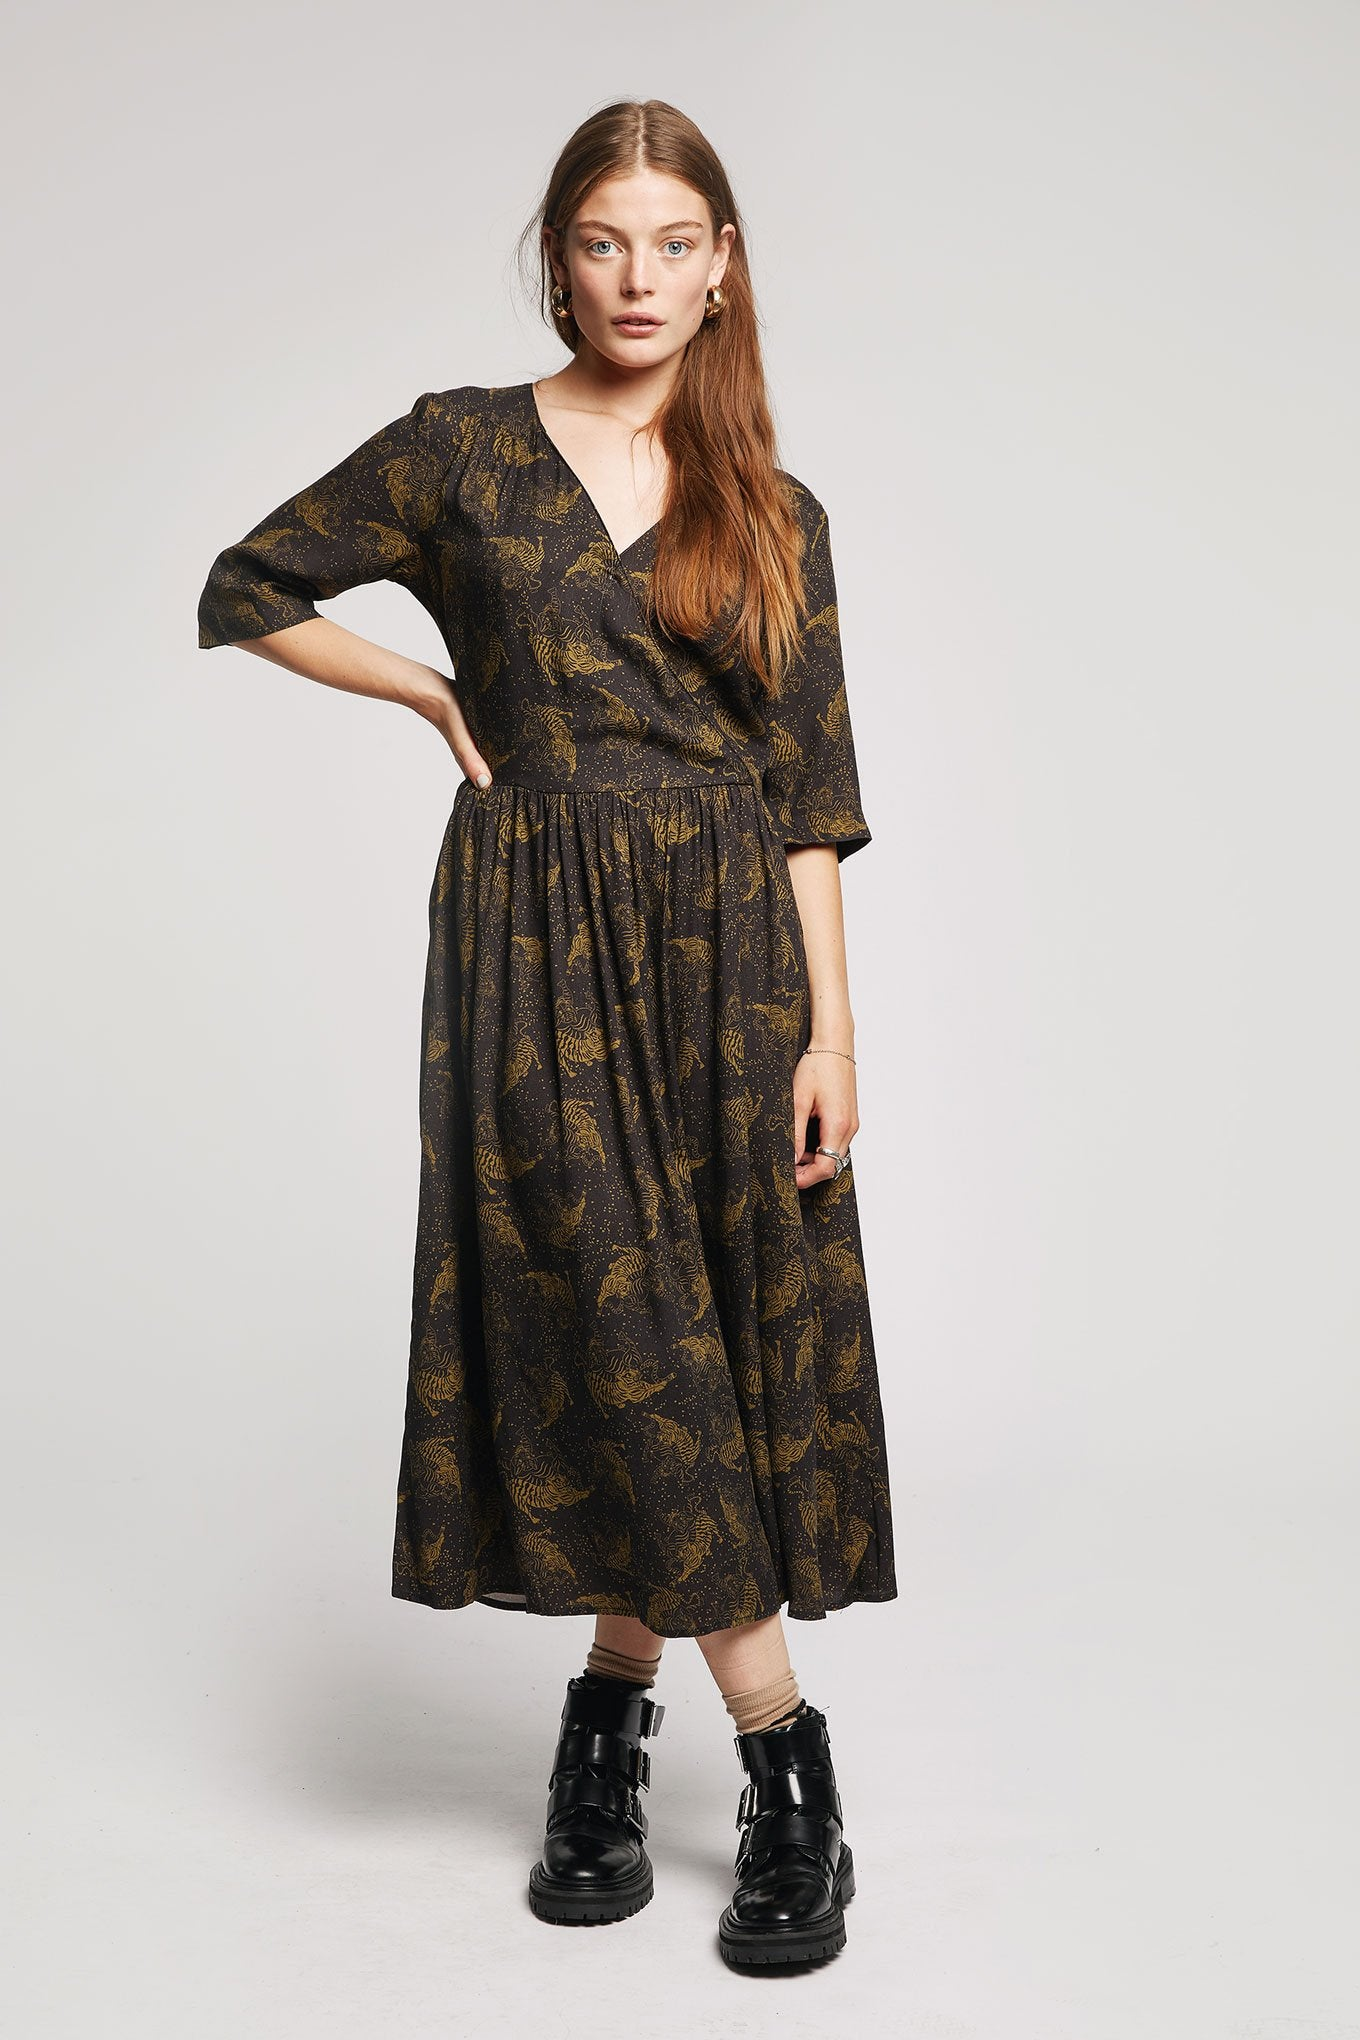 TENZING Rayon Dress Olive/Black